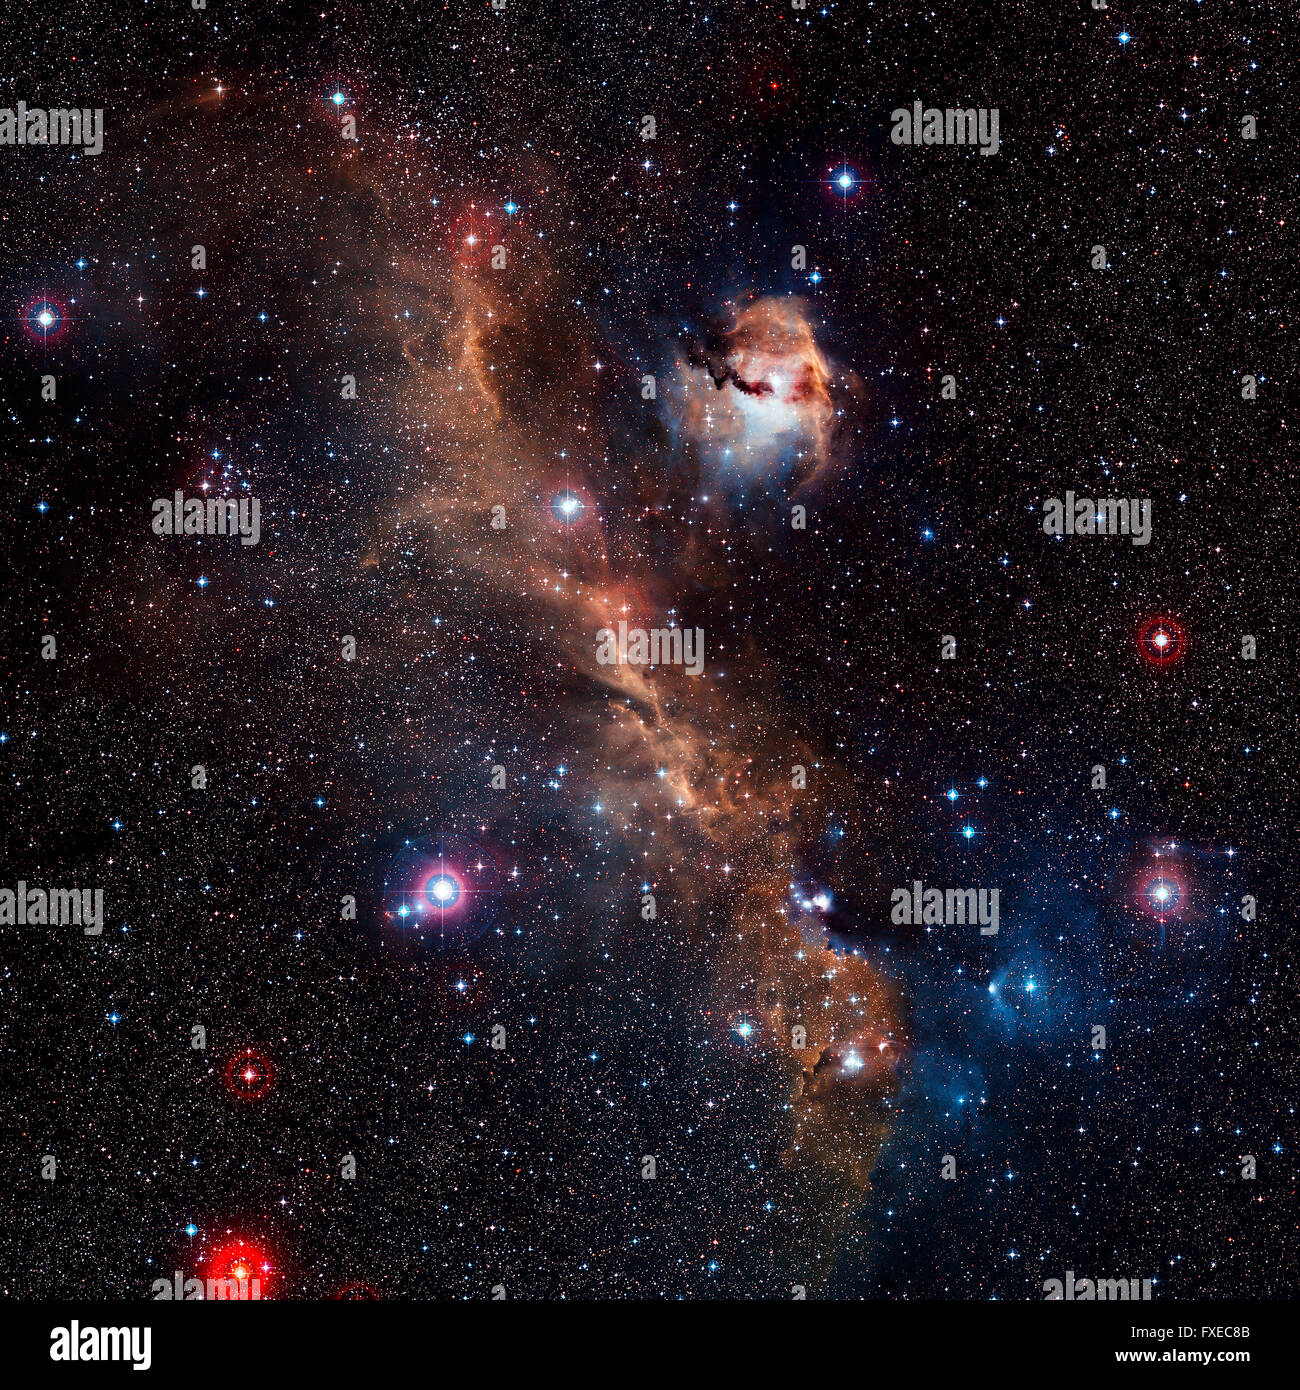 Stars nebula, beautiful and colorful explosive in space - Stock Image